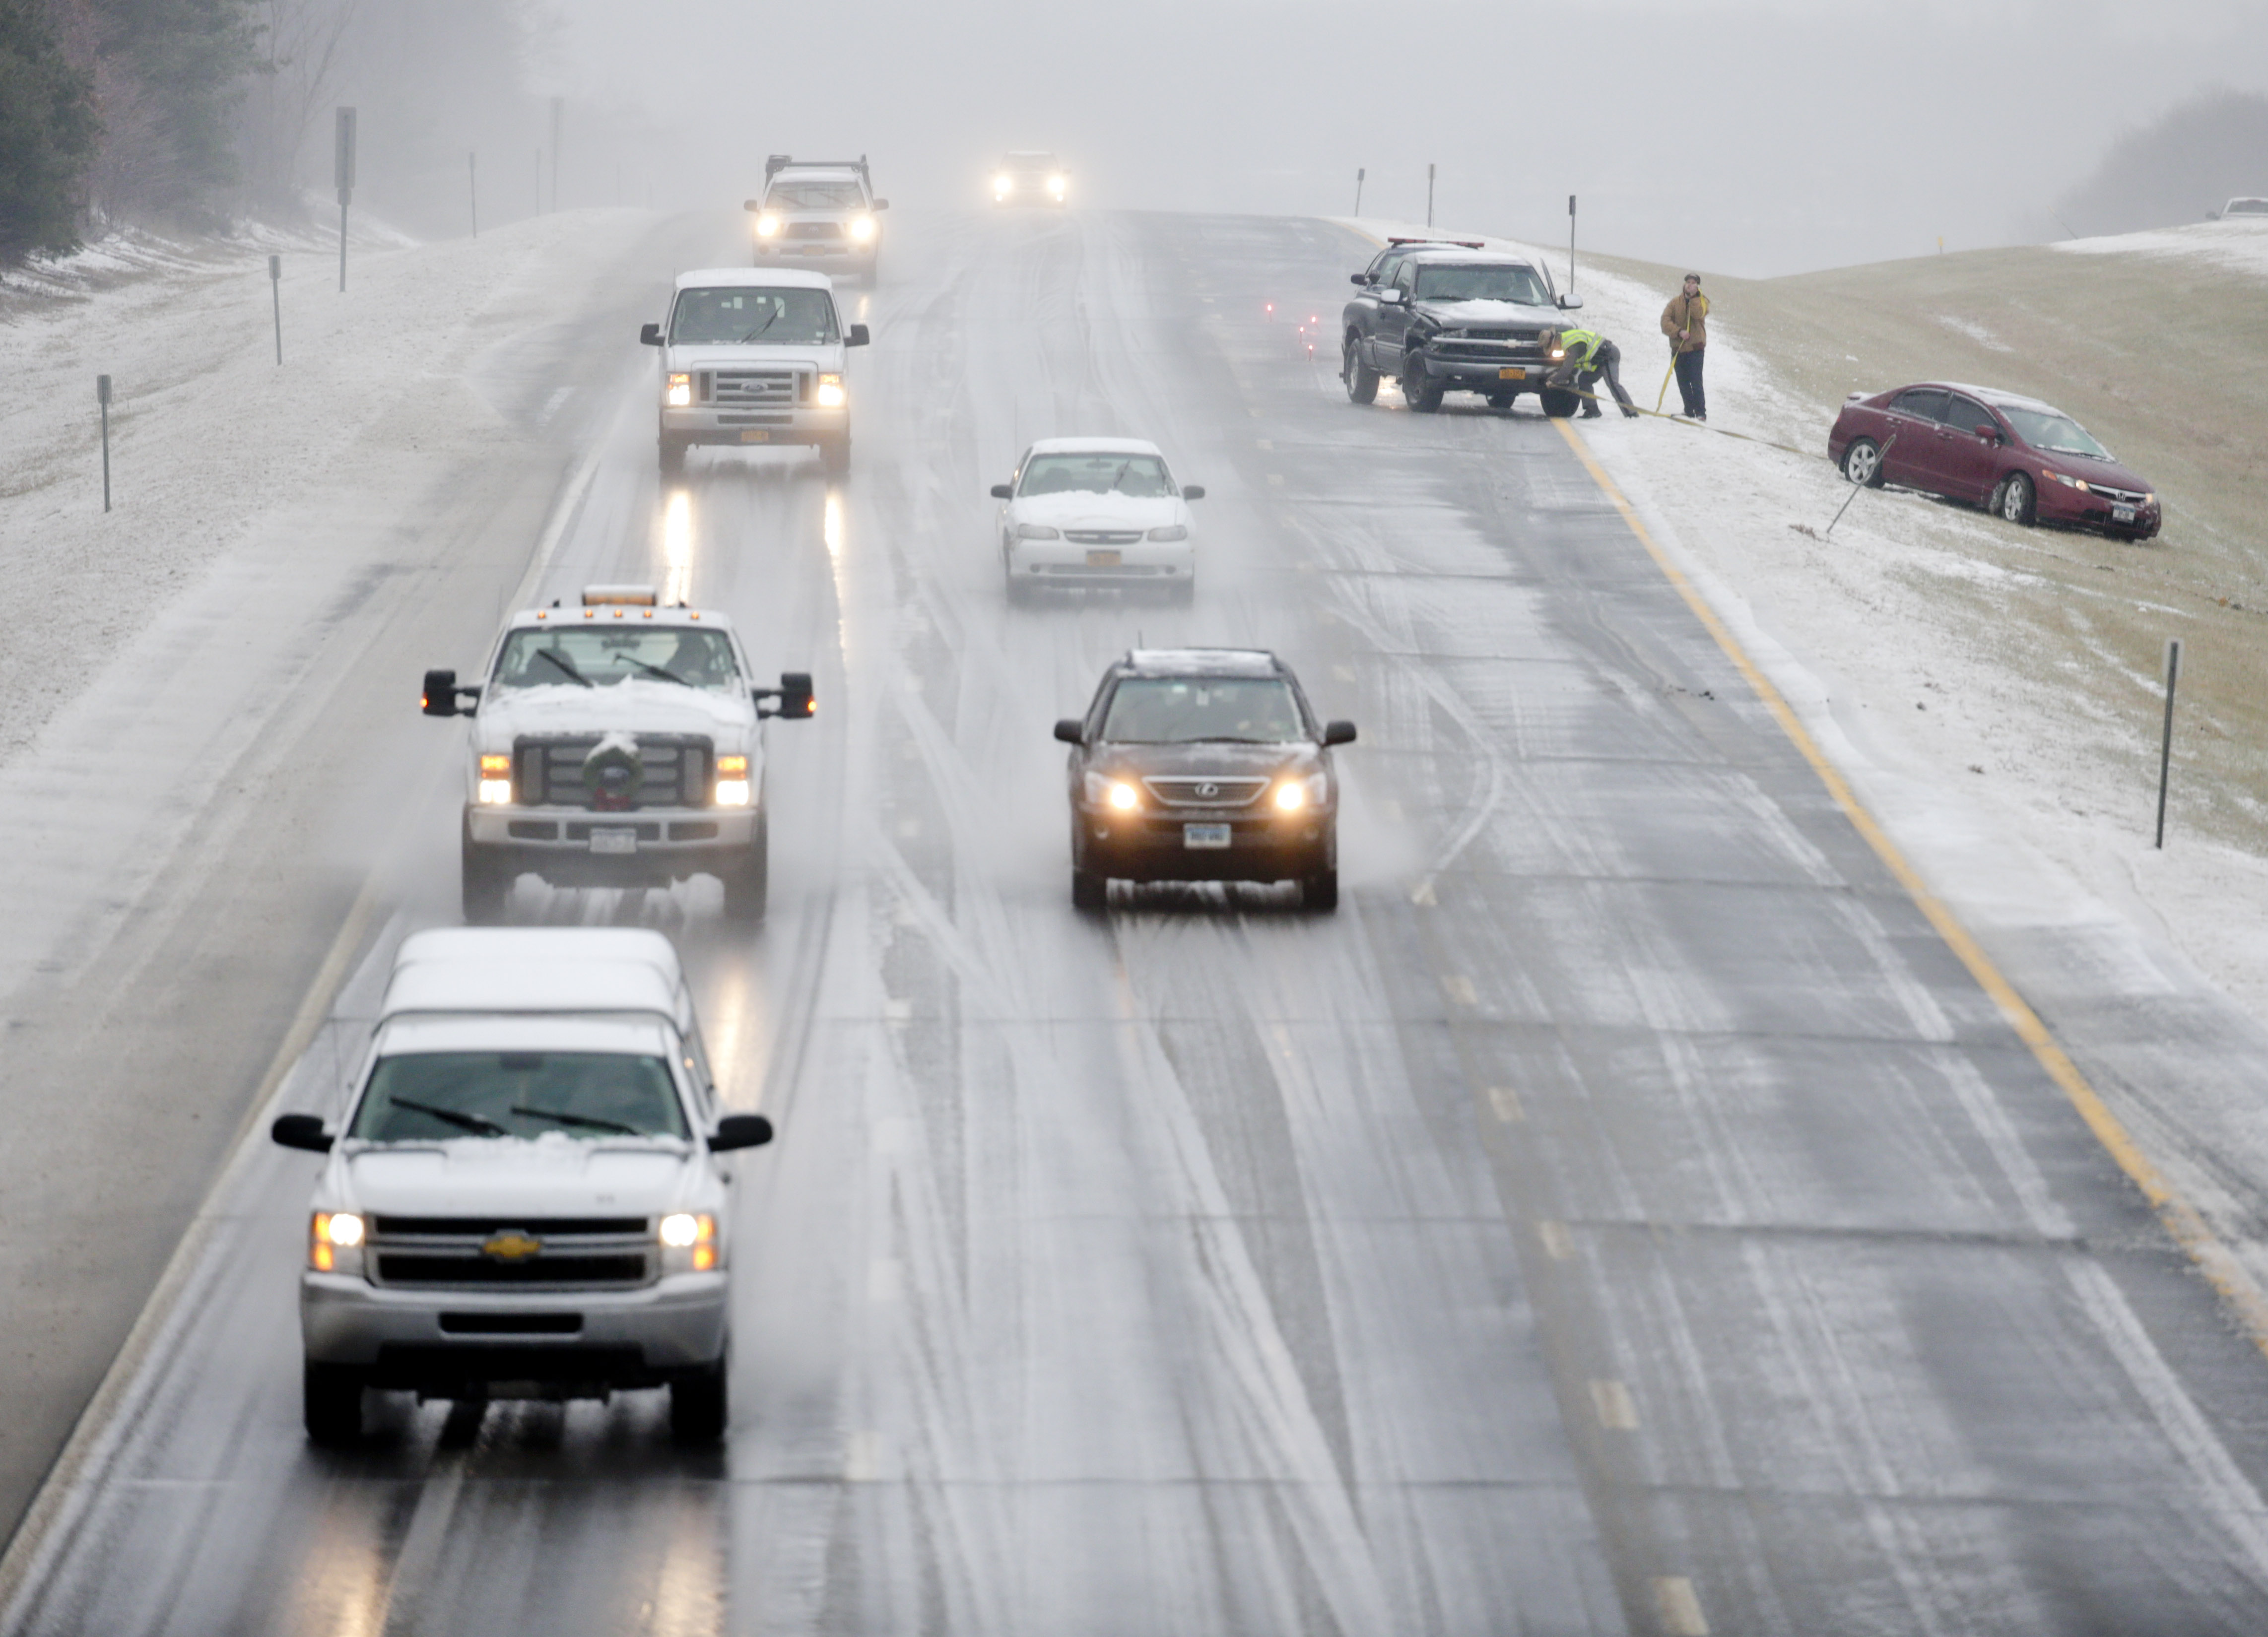 Tips for driving in the snow from WTOP's traffic experts